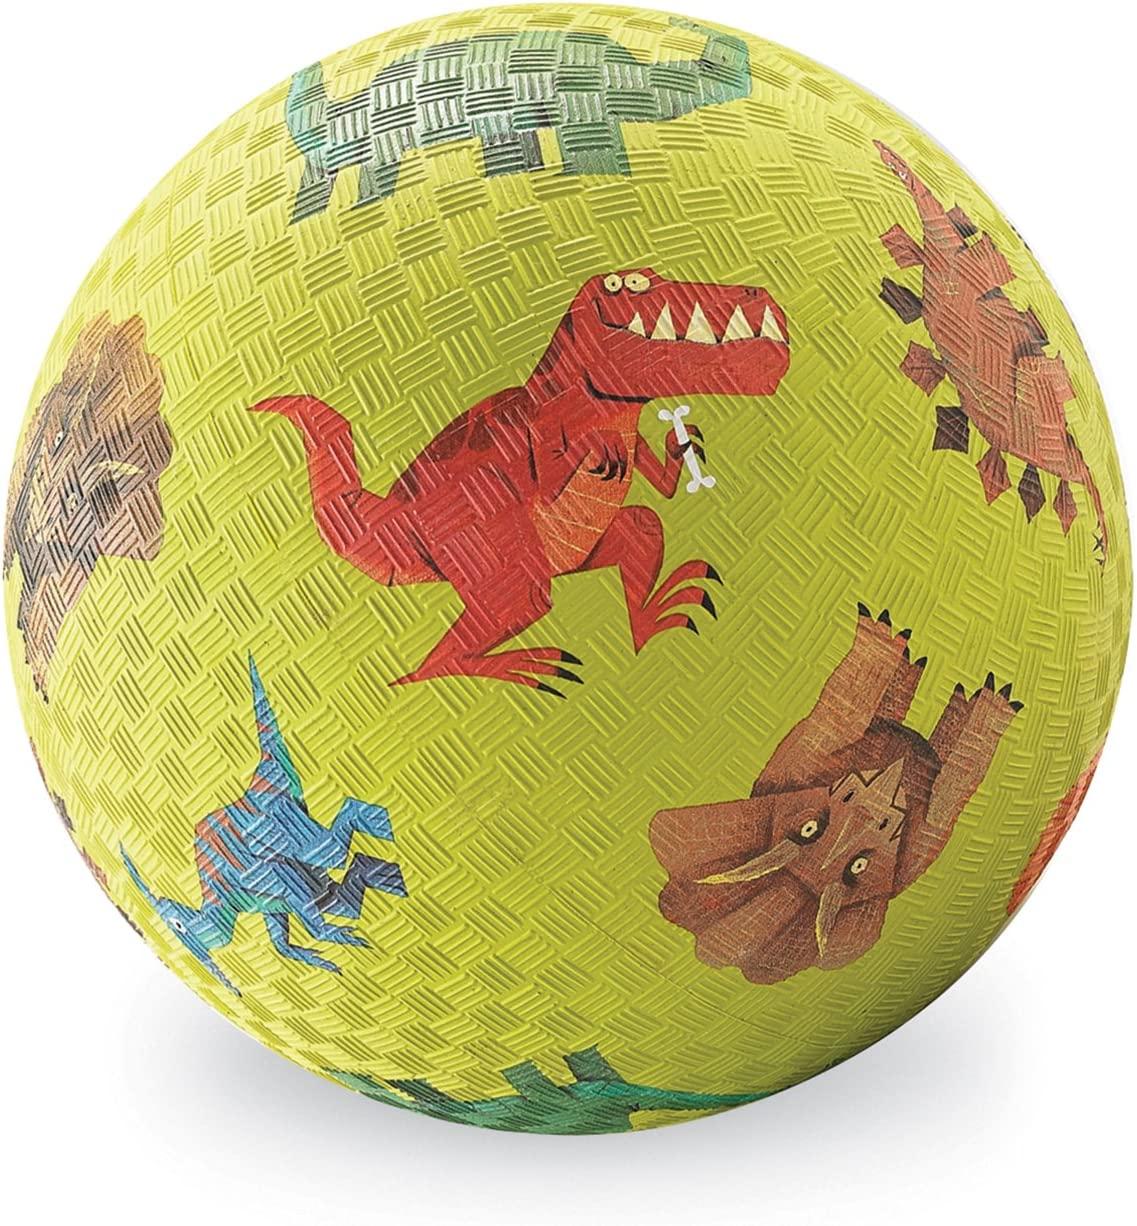 Dinosaurs- Rubber Playground Ball 5 for Kids Ages 3 /& Up Crocodile Creek